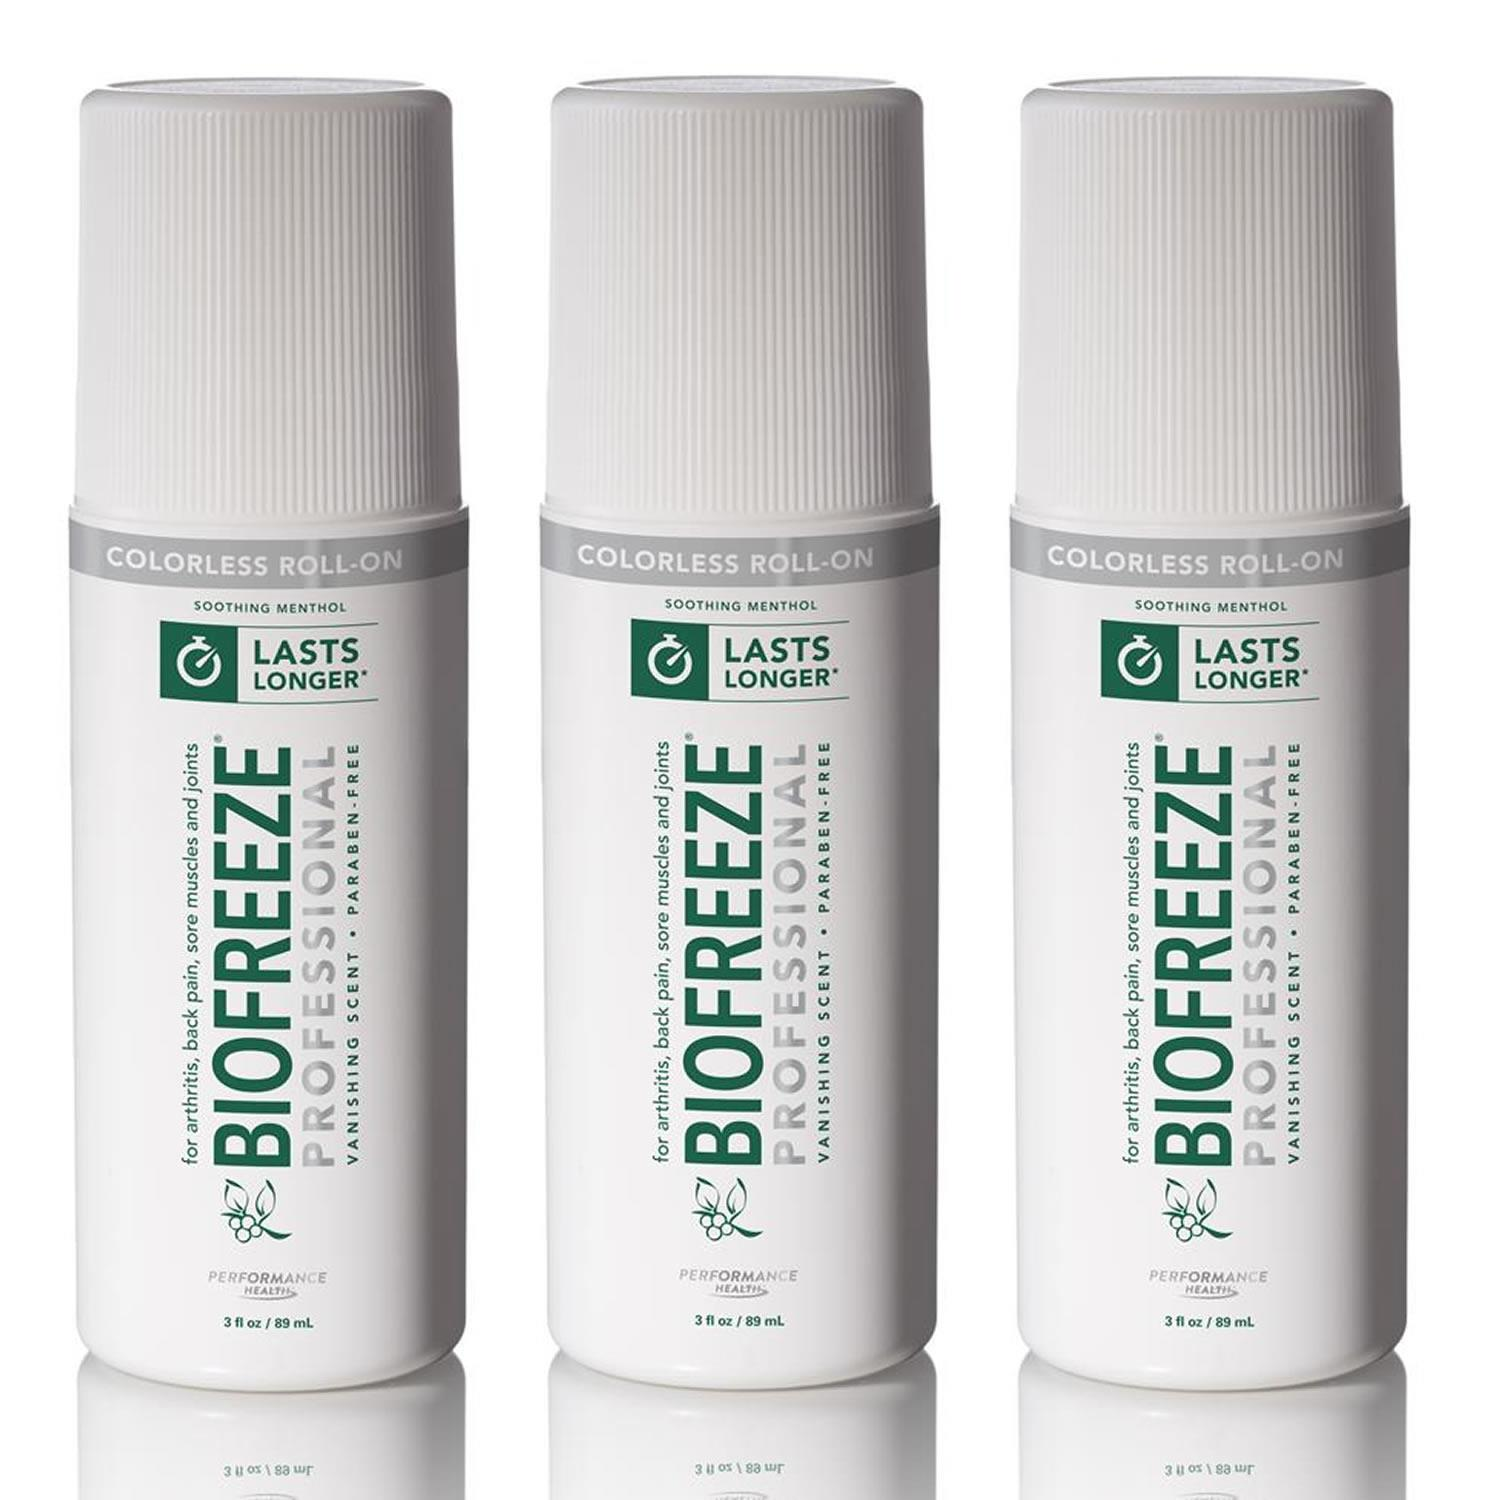 Biofreeze Biofreeze Professional Colorless 3oz Roll-On 3PK Pain Relief Arthritis Fast-Acting